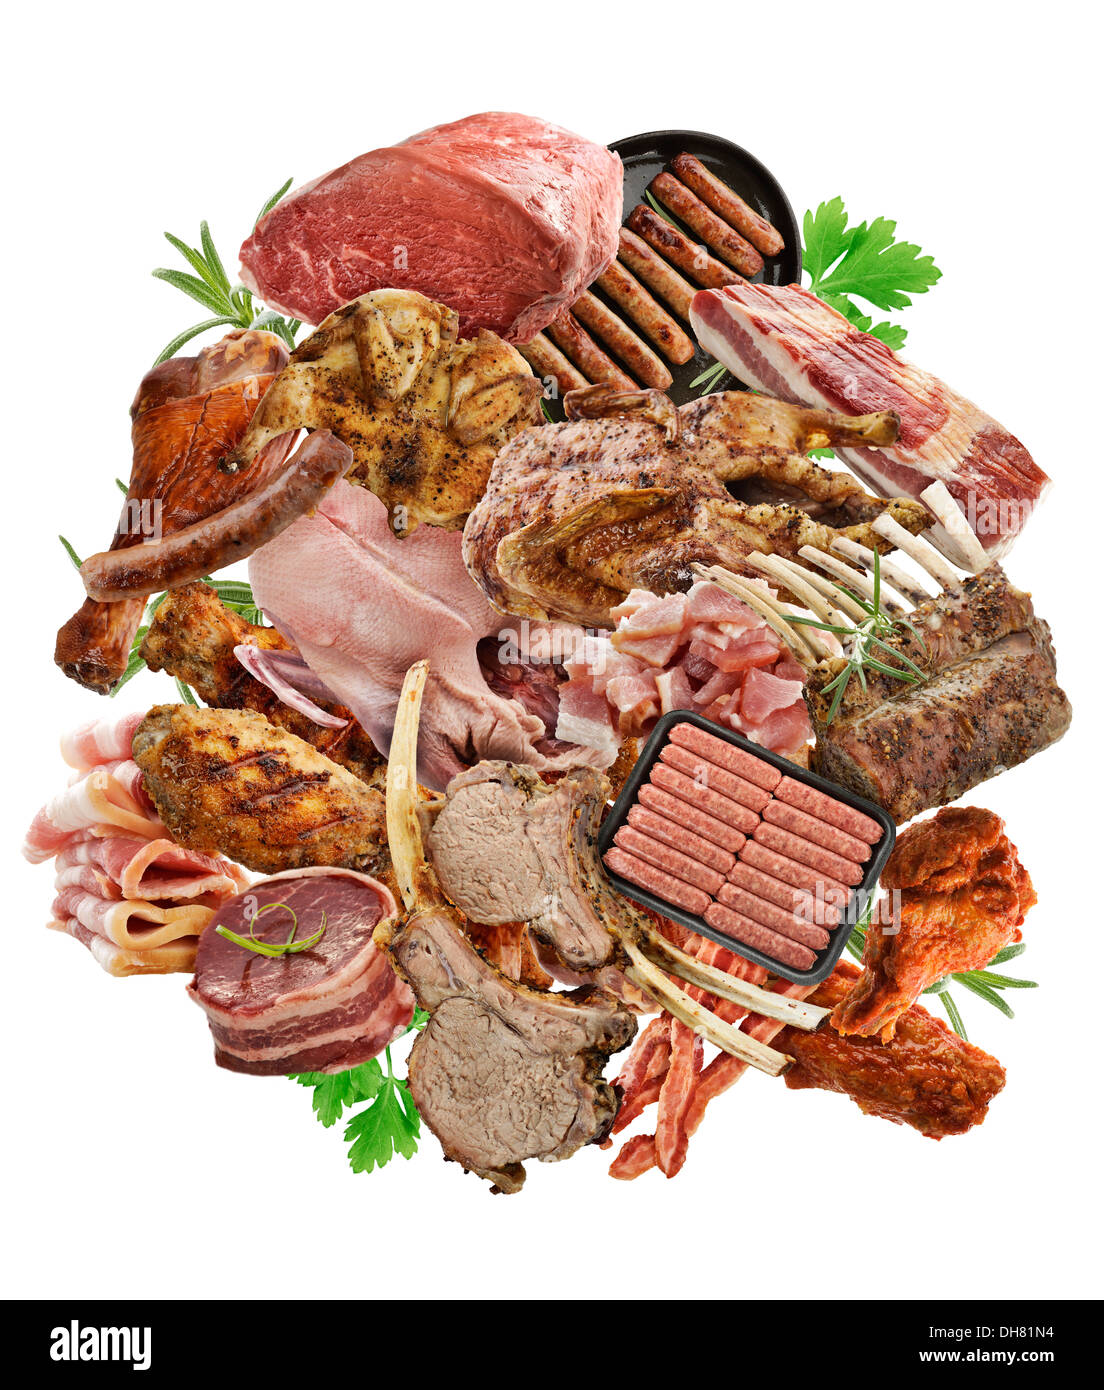 Assortment Of Meat Products On White Background - Stock Image